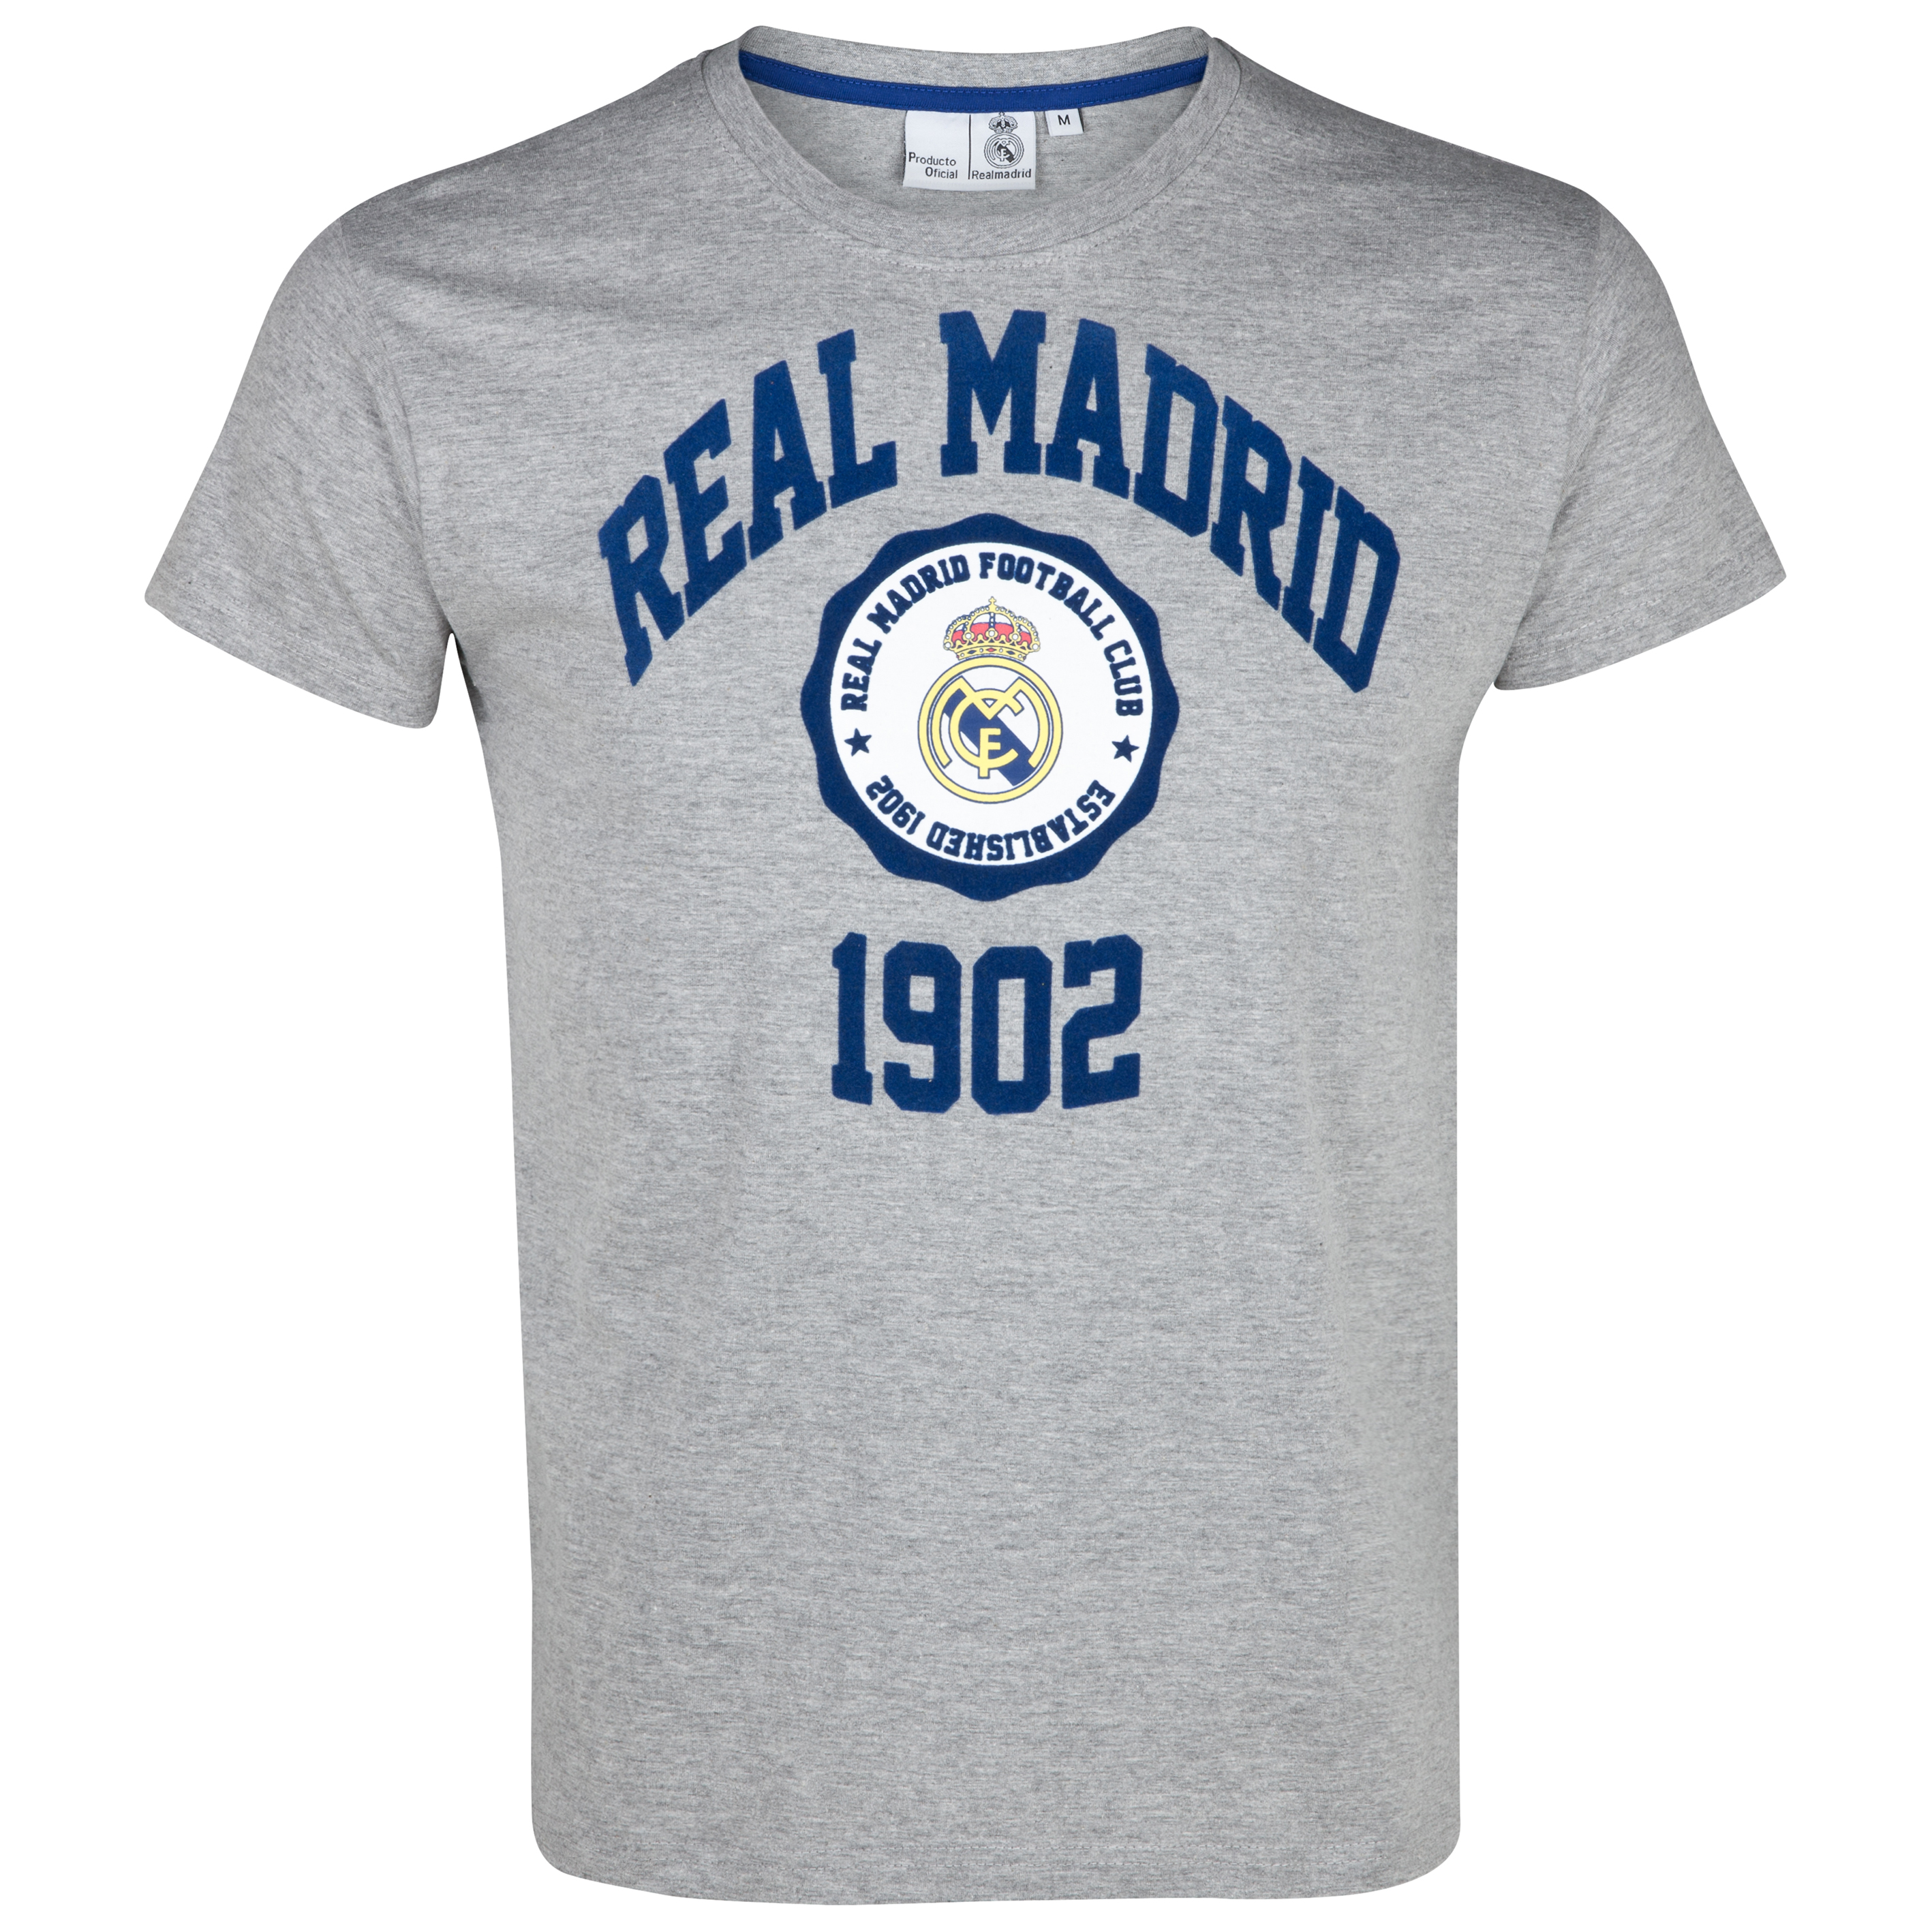 Real Madrid 1902 T-Shirt - Grey